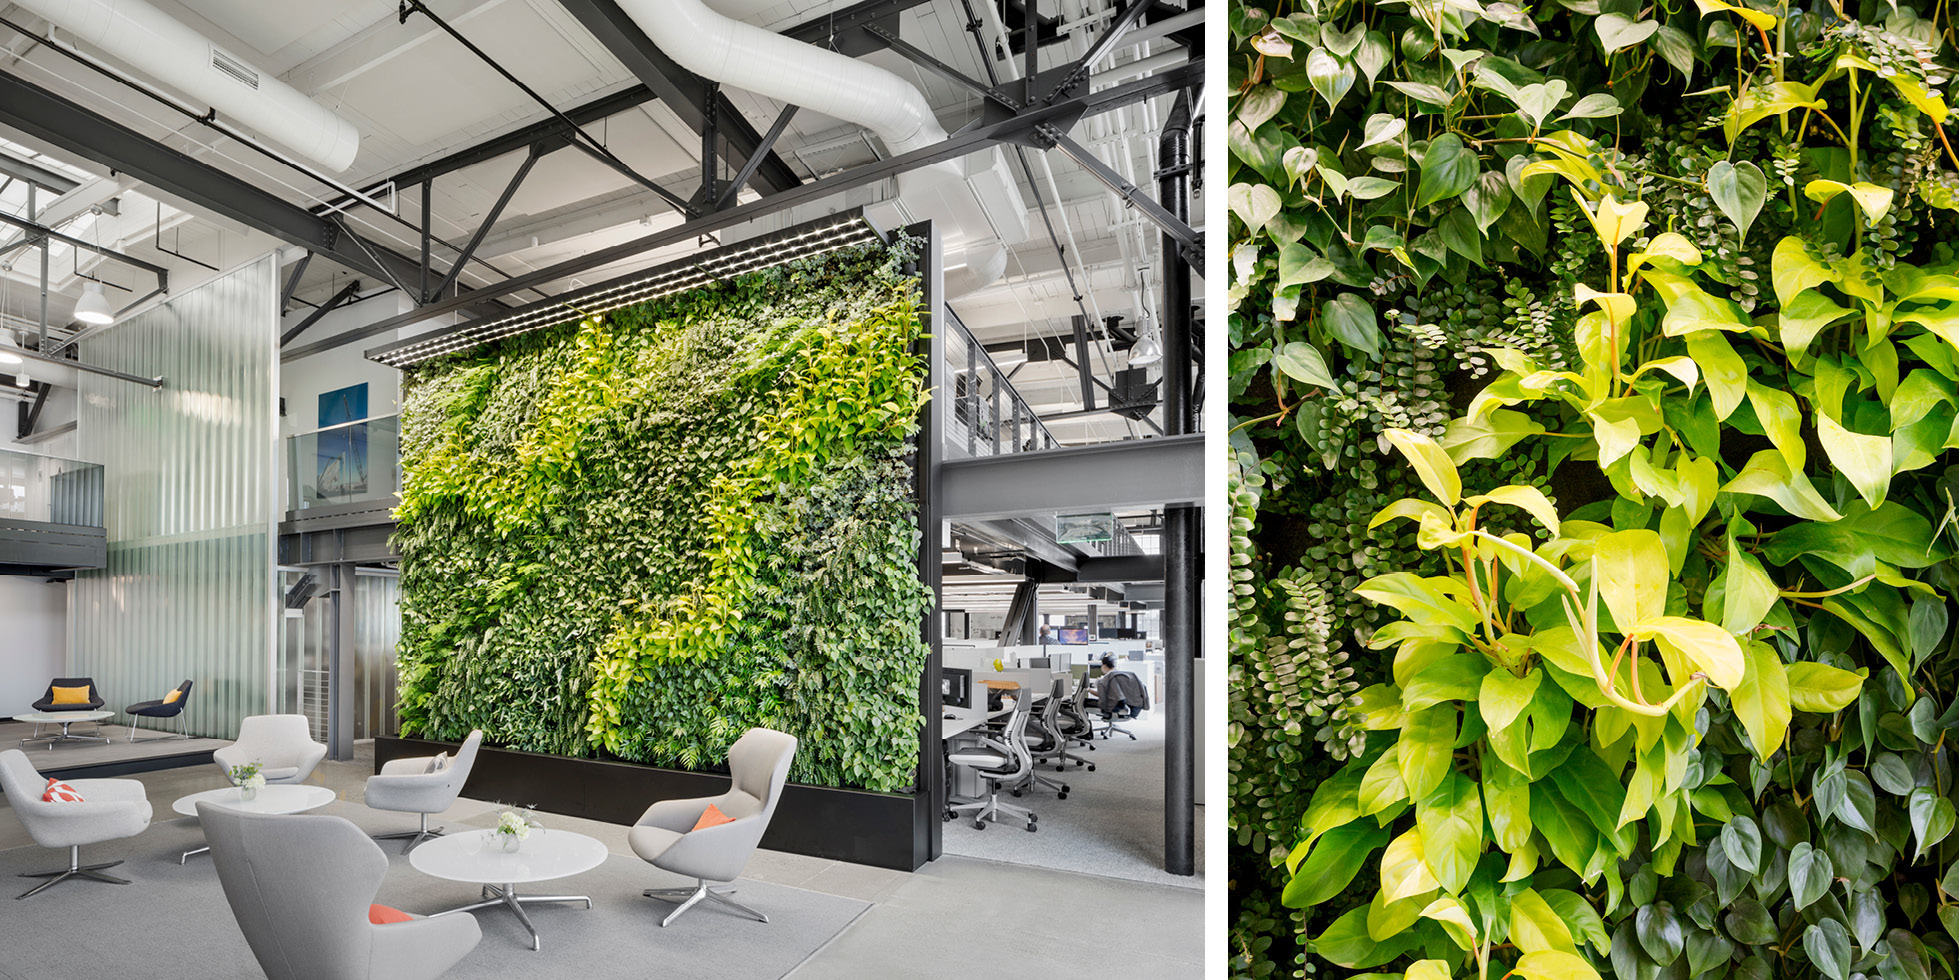 Prologis Living Wall by Habitat Horticulture - View 2